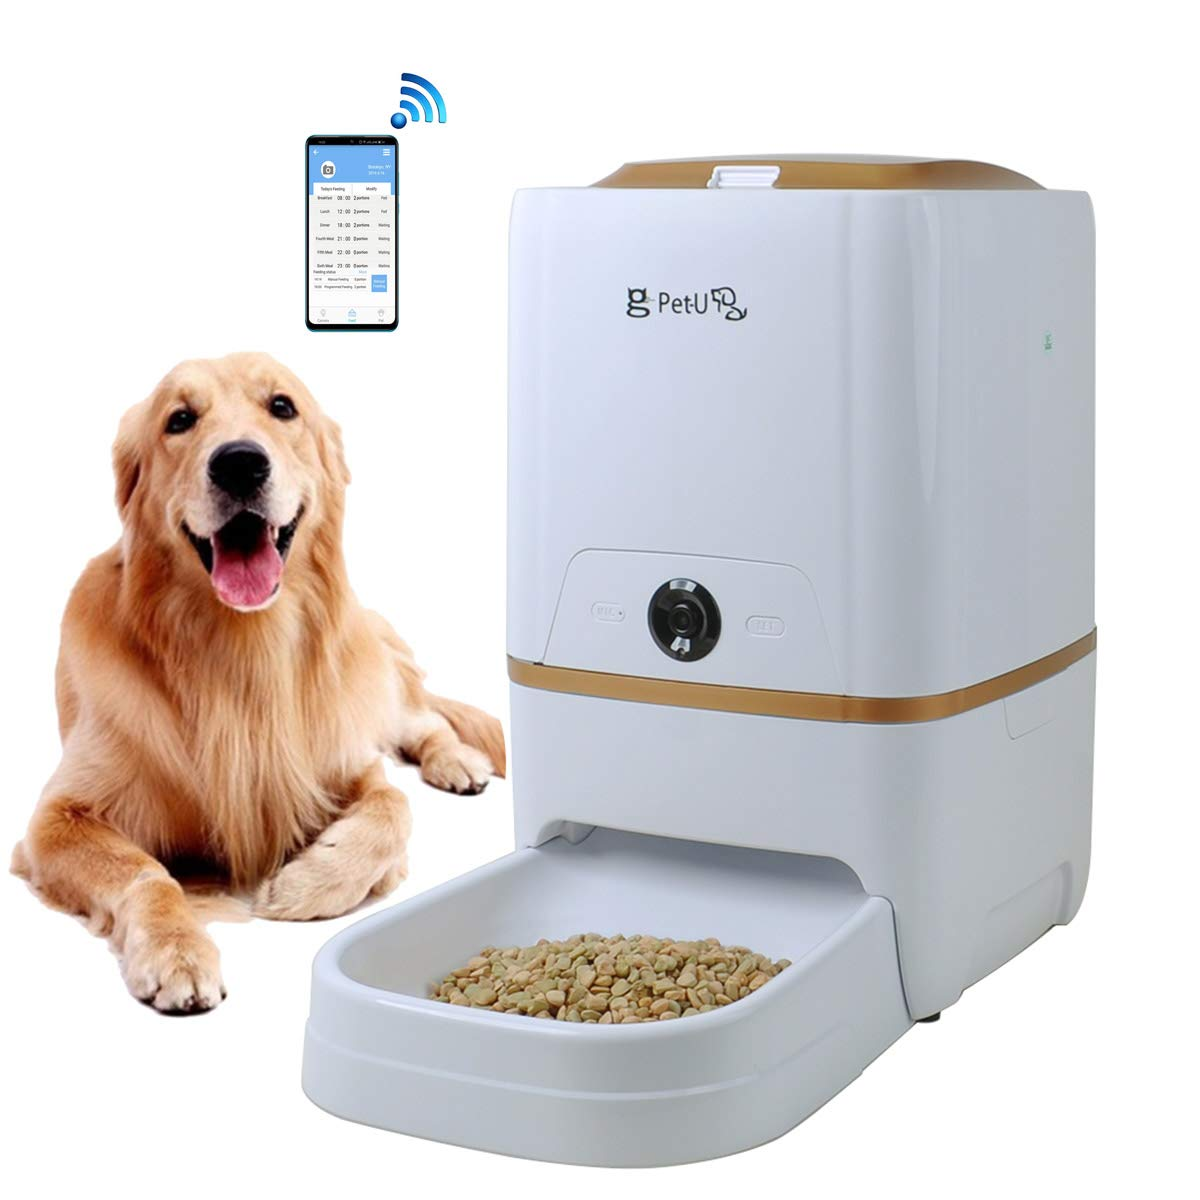 USDREAM WiFi Automatic Dog and Cat Feeder Electric Auto Pet Food Dispenser with Smart APP Wireless Remote Control, Two Way Video & Audio, HD 720P Camera & Timed Programmable, White with Gold